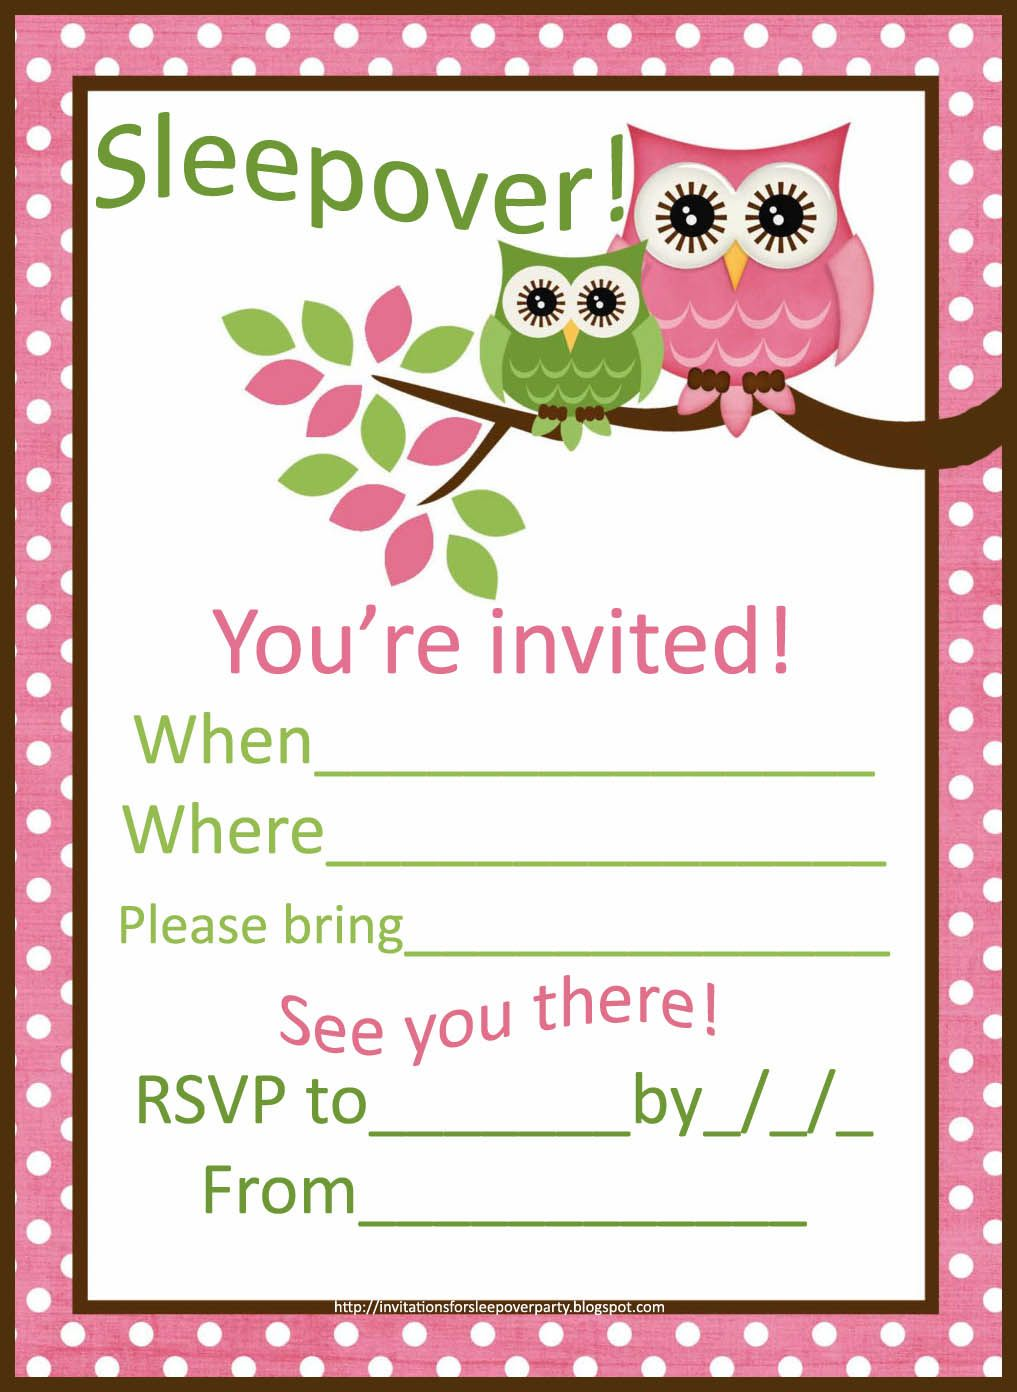 sleepover invitations for girls cute pink owls sleepover printable invitations for sleepover party as well as coloring pages for your next pajama party